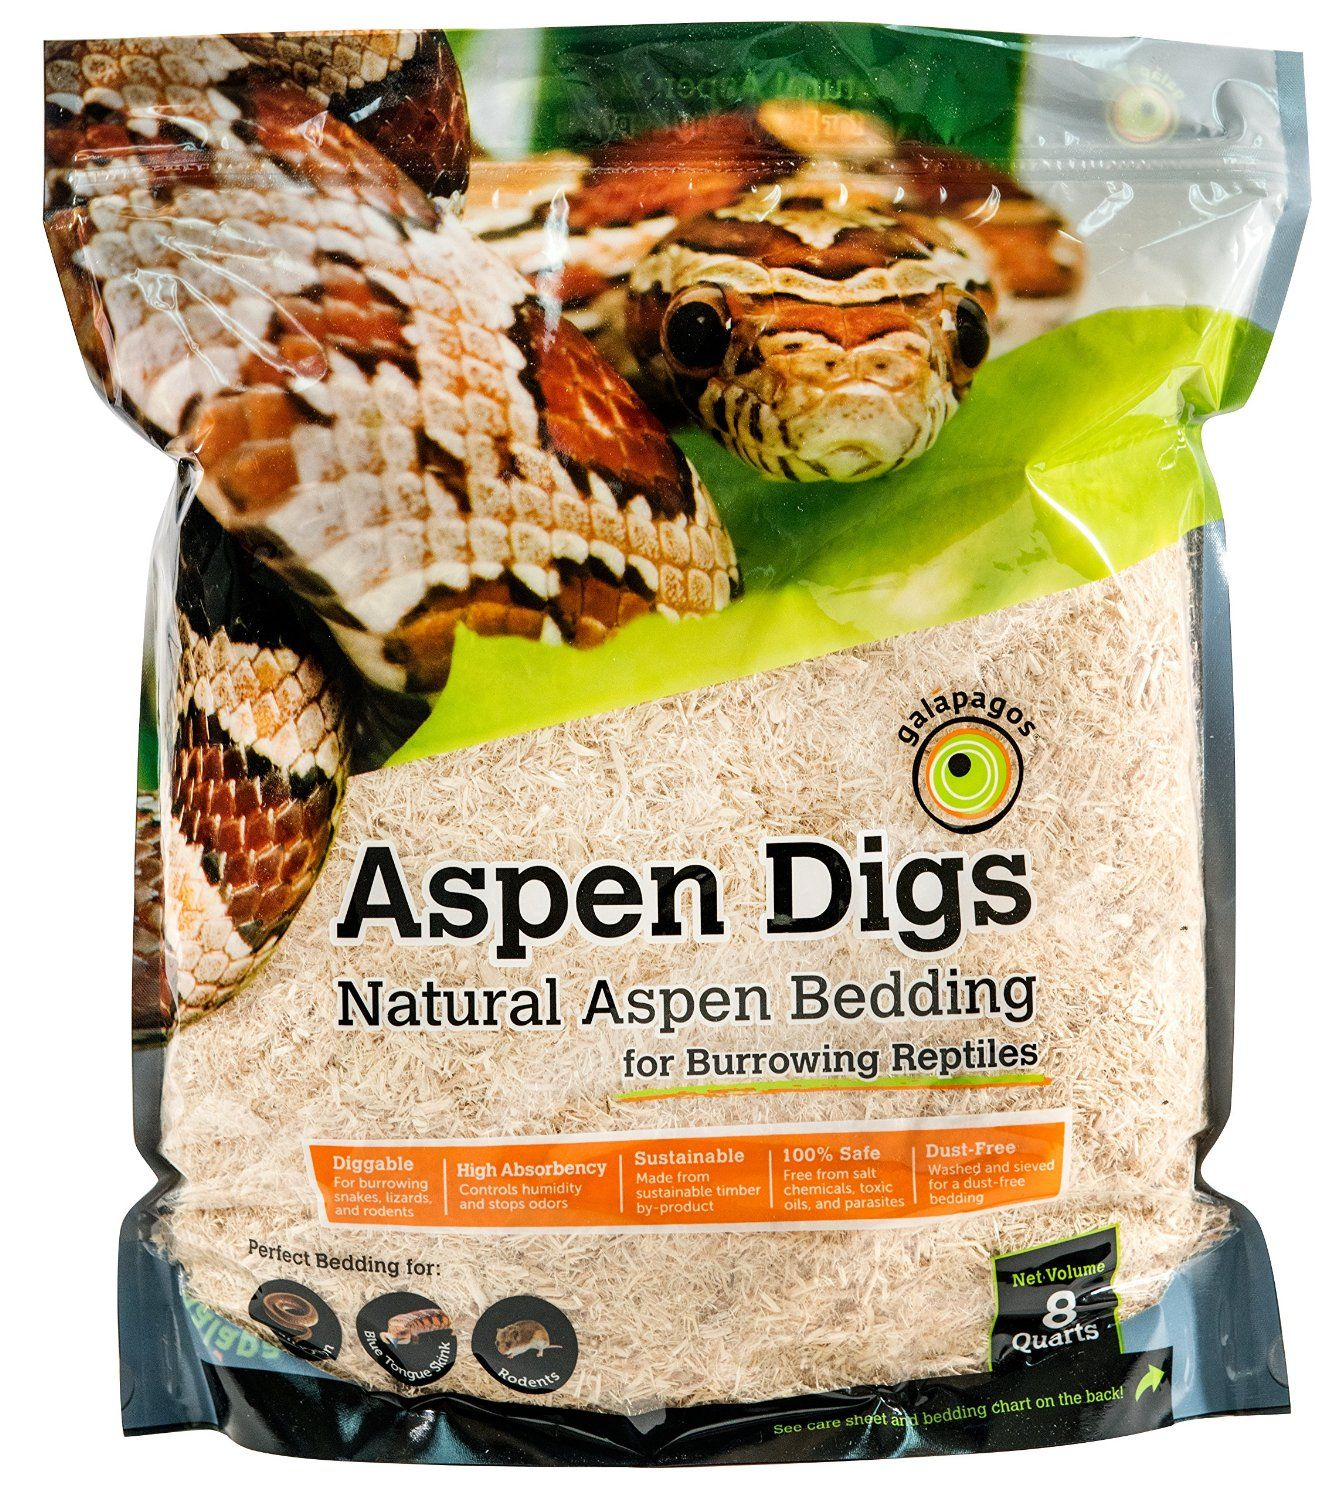 Top 4 Snake Bedding Material under 15 (With images